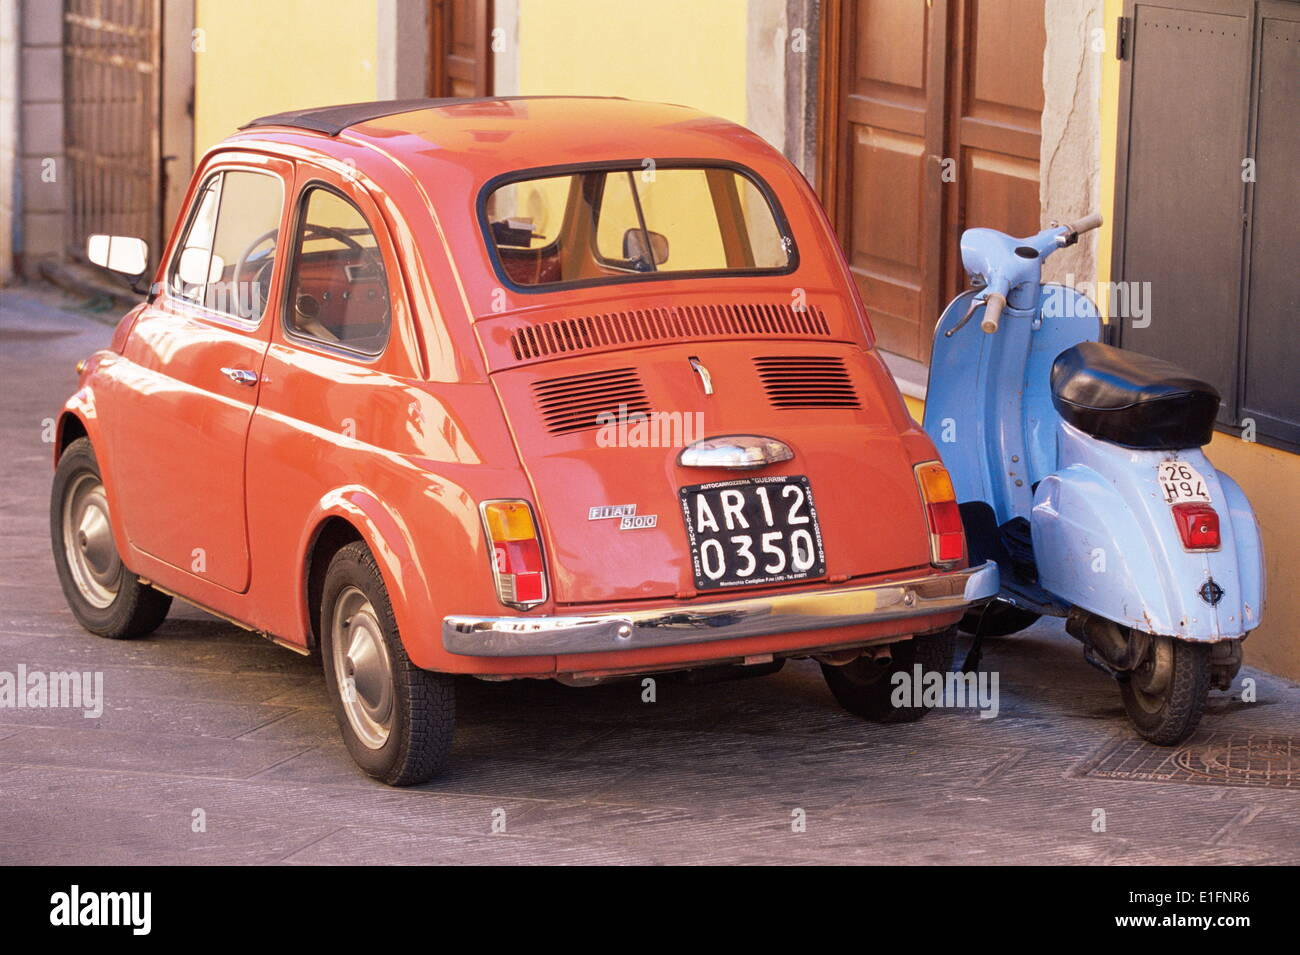 Fiat 500 Car And Old Blue Scooter Parked Together In Back Street